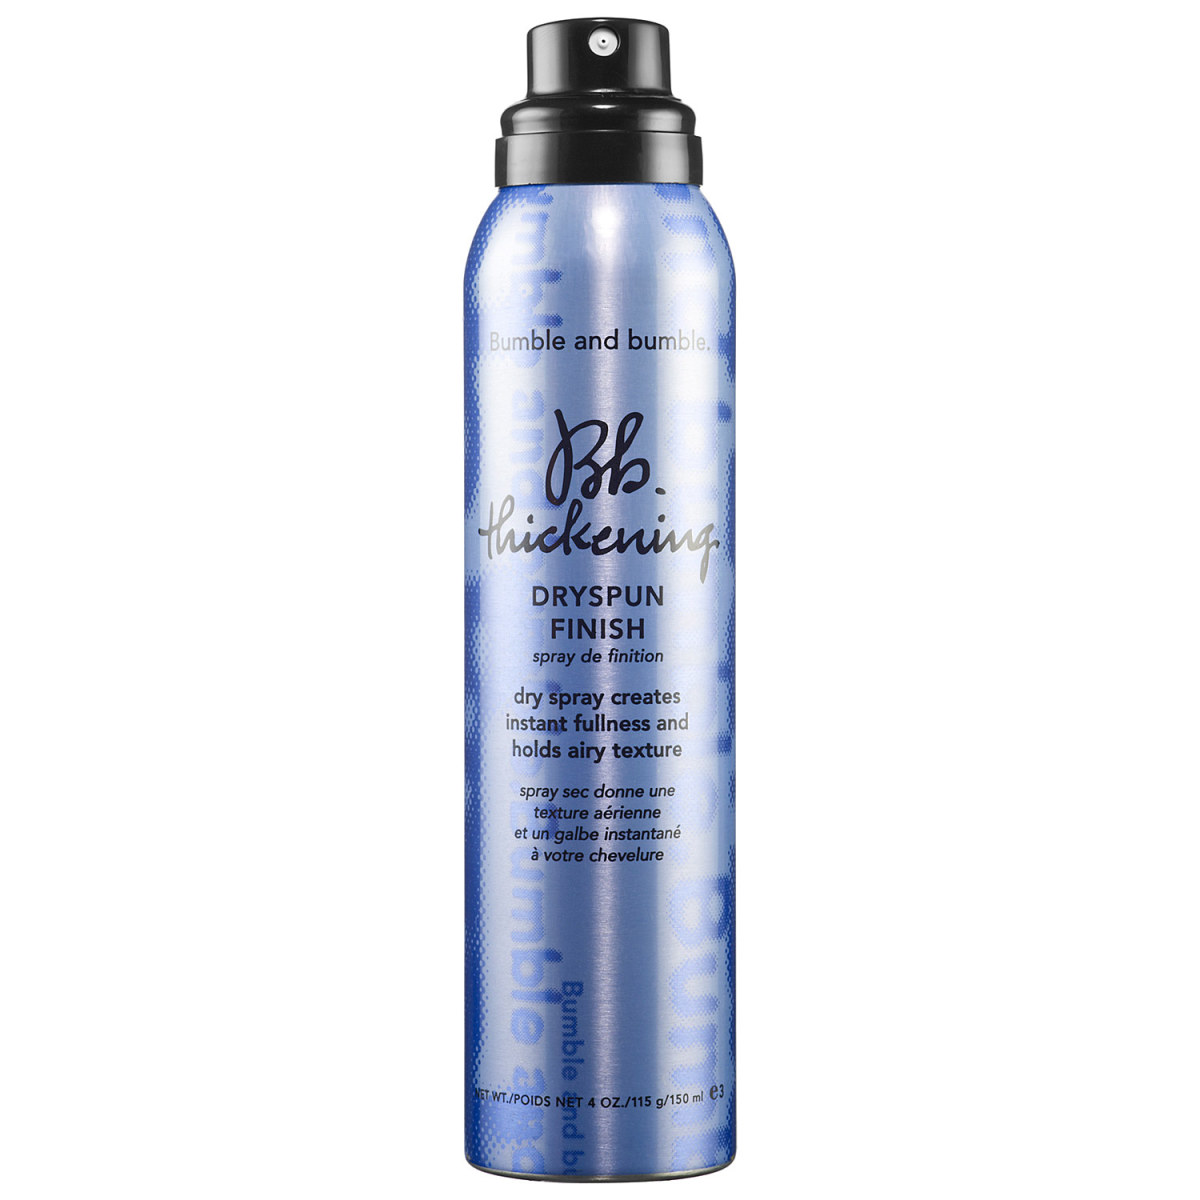 Bumble and Bumble Thickening Dryspun Finish, $31, available at Sephora.